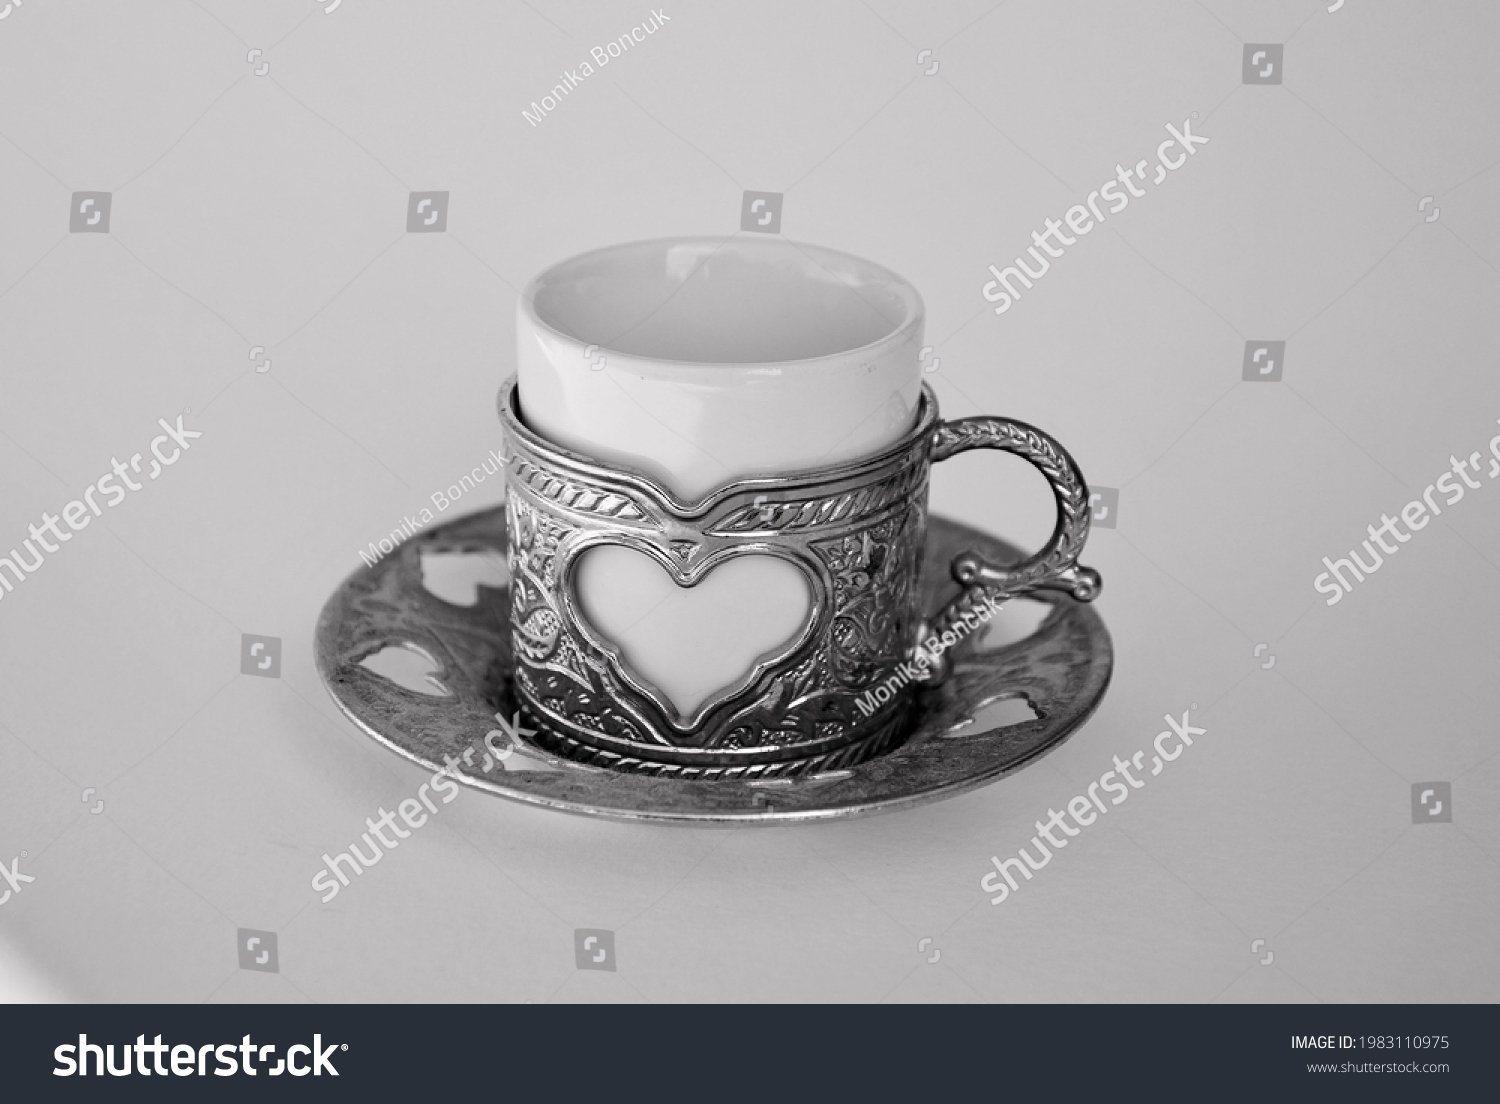 a traditionel cup for good coffee